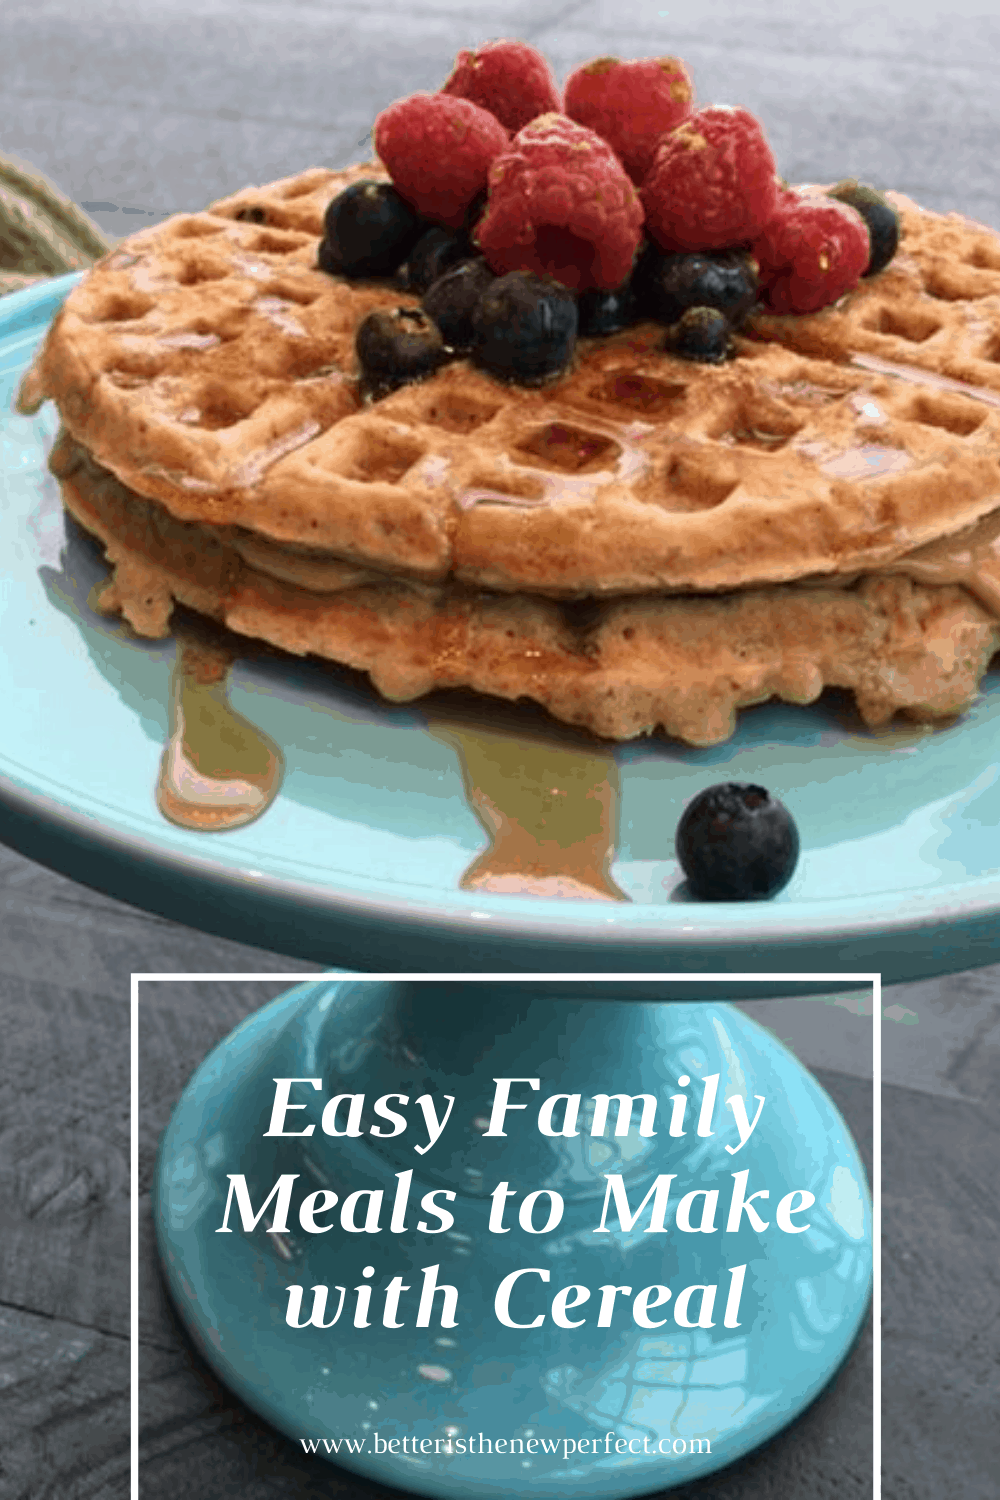 easy family meals to make with cereal photo credit: Bonnie Taub-Dix